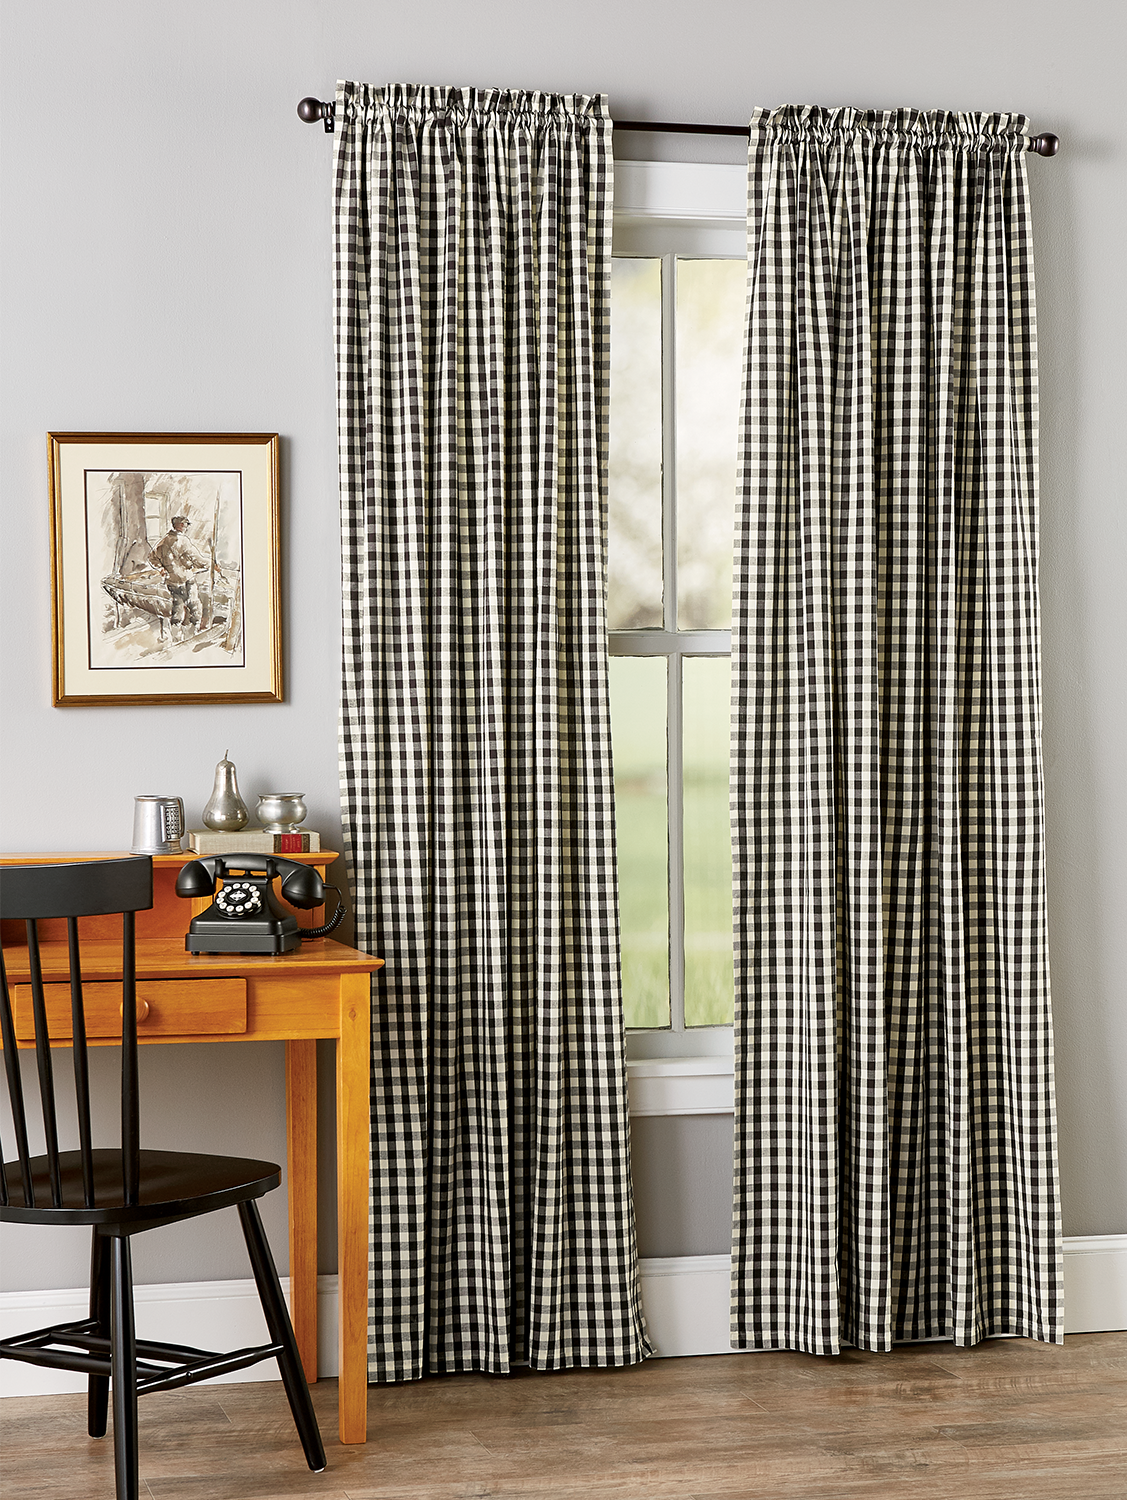 Cabin Check Rod Pocket Curtains Navy 100in W X 72in L Vermont Country Store In 2021 Rod Pocket Curtains Cabin Curtains Curtains What are rod pocket curtains